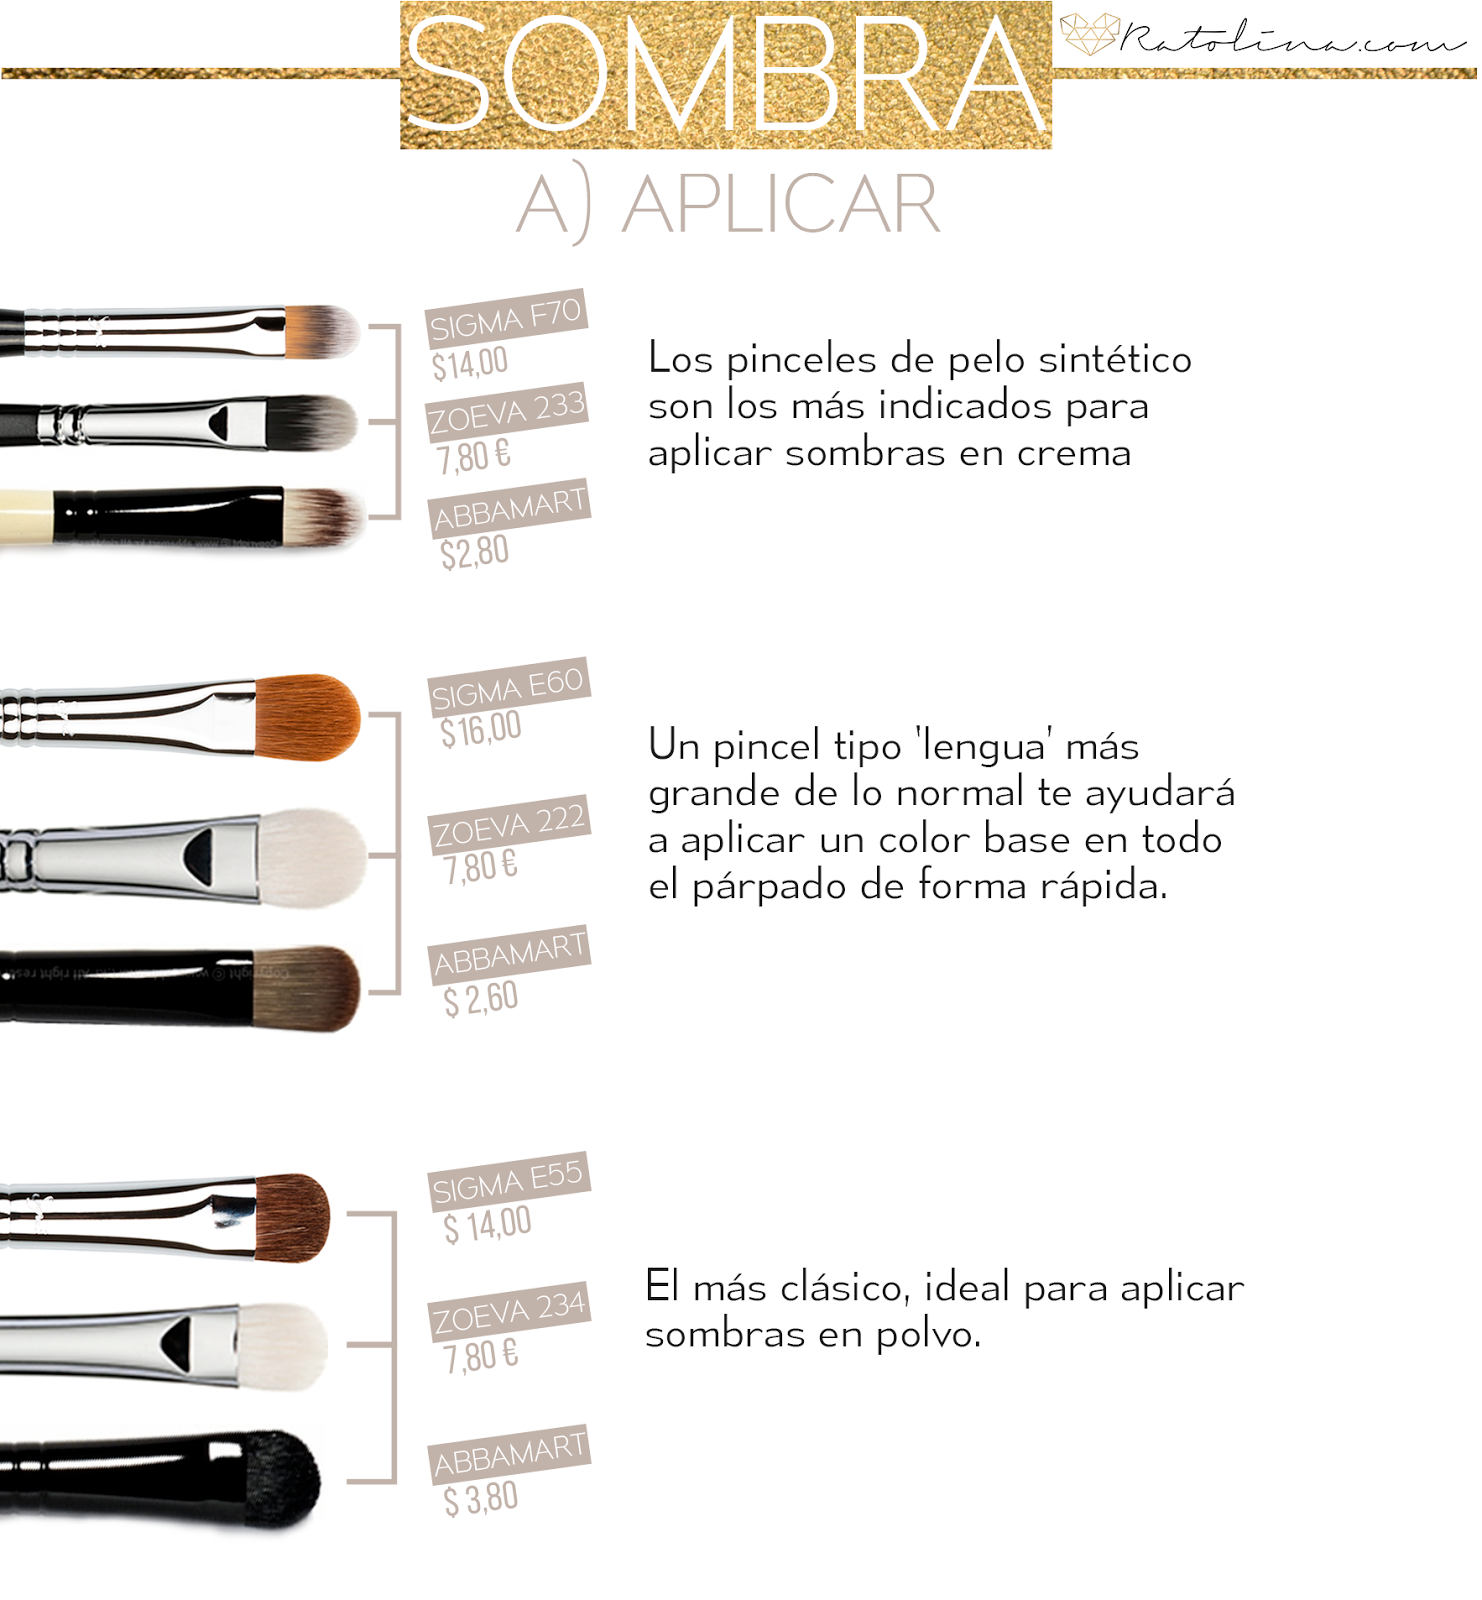 Pinceles sombras low cost